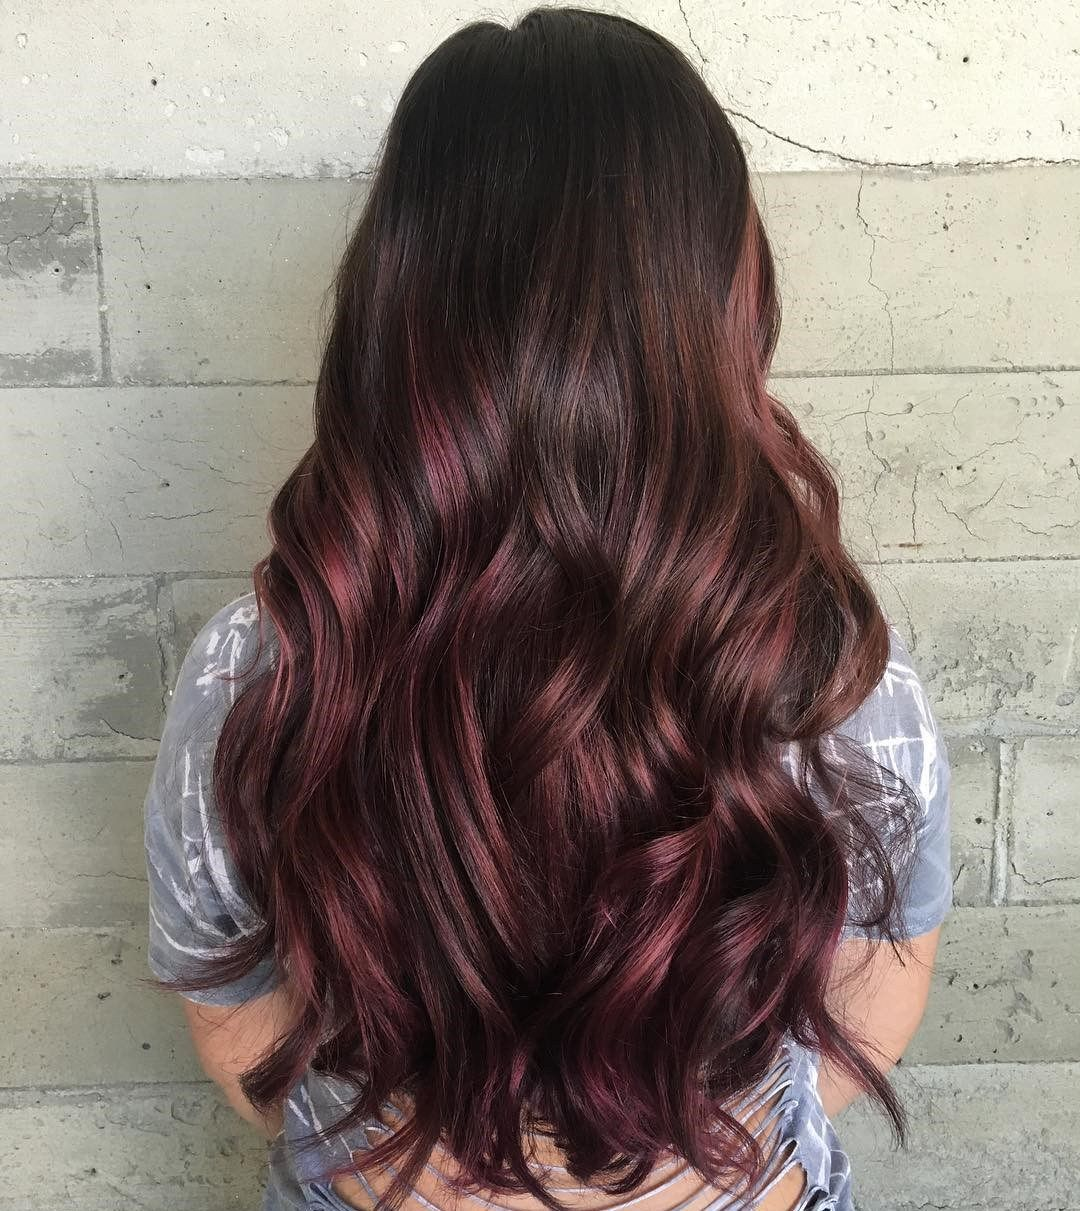 45 Shades Of Burgundy Hair Dark Burgundy Maroon Burgundy With Red Purple And Brown Highlights Burgundy Balayage Hair Color Burgundy Burgundy Hair